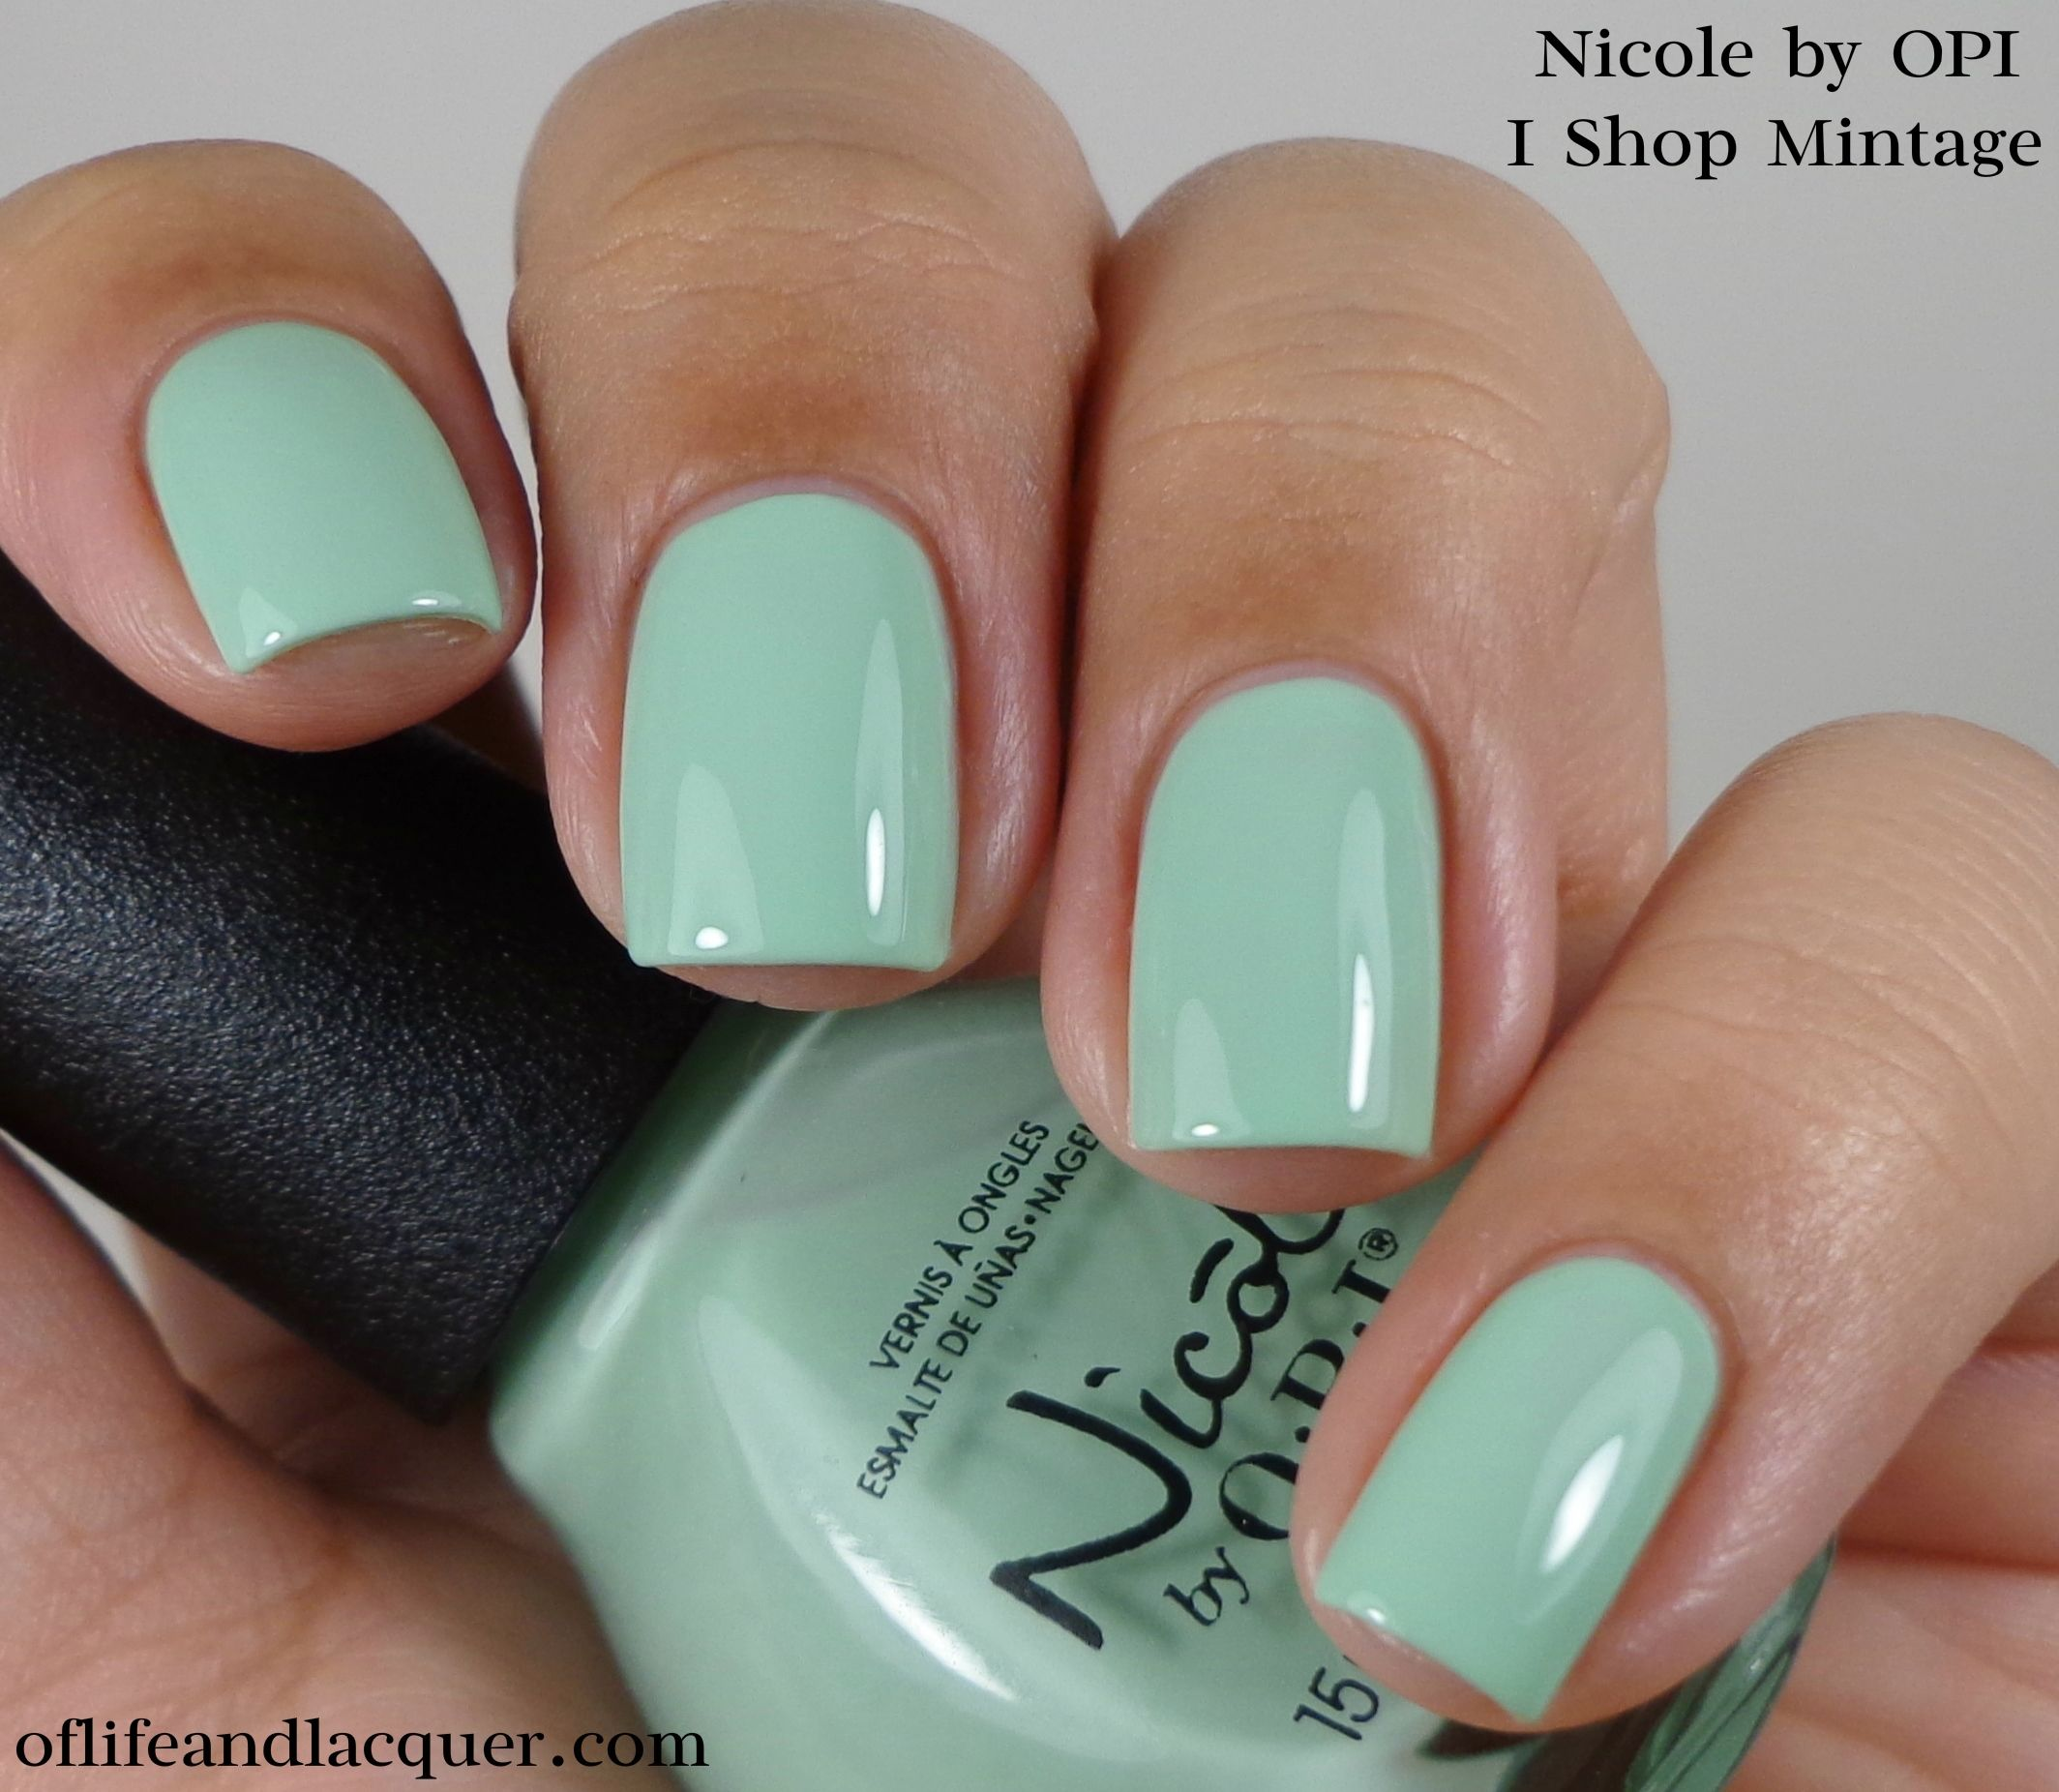 Nicole by OPI | Nails | Pinterest